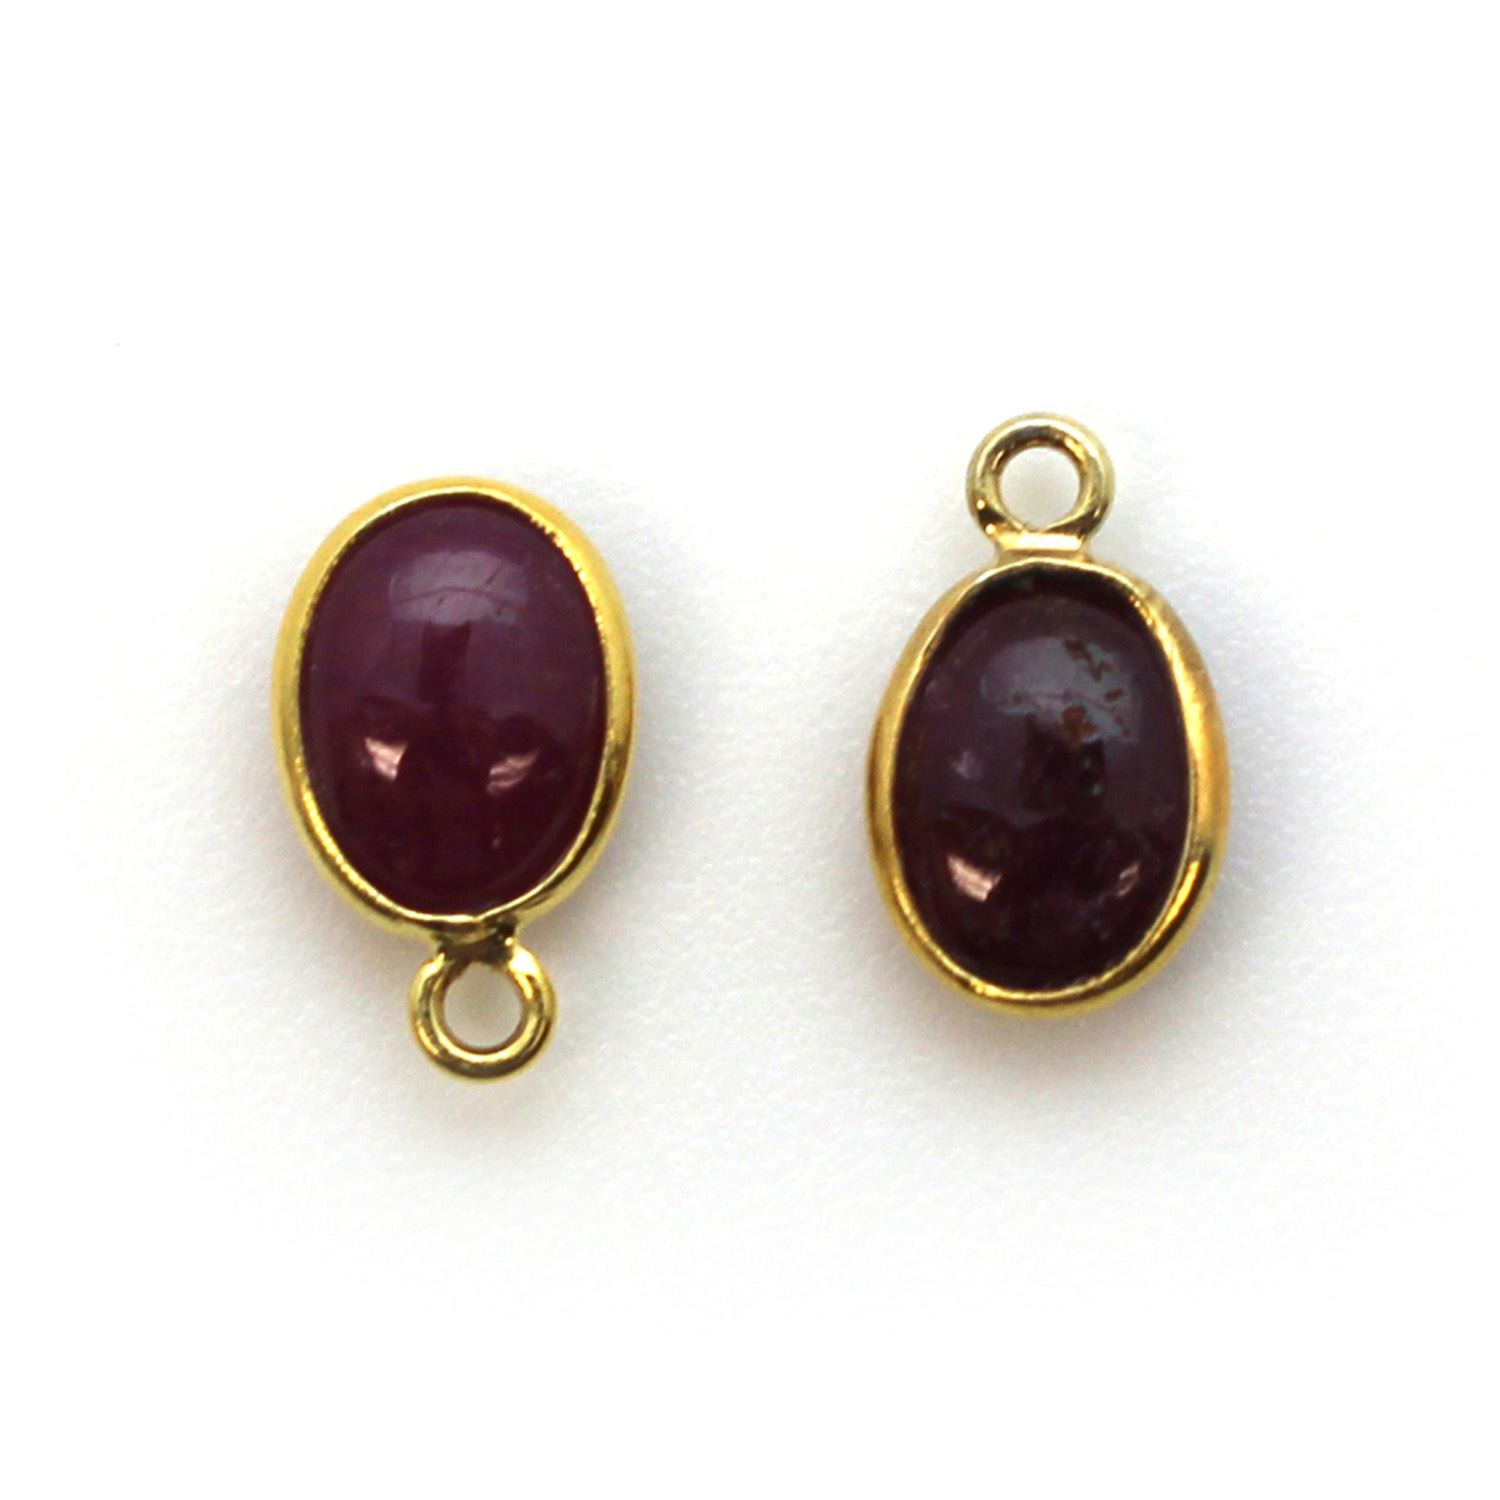 Bezel Charm Pendant - Gold Plated Silver Charm - Natural Ruby -Tiny Oval Shape